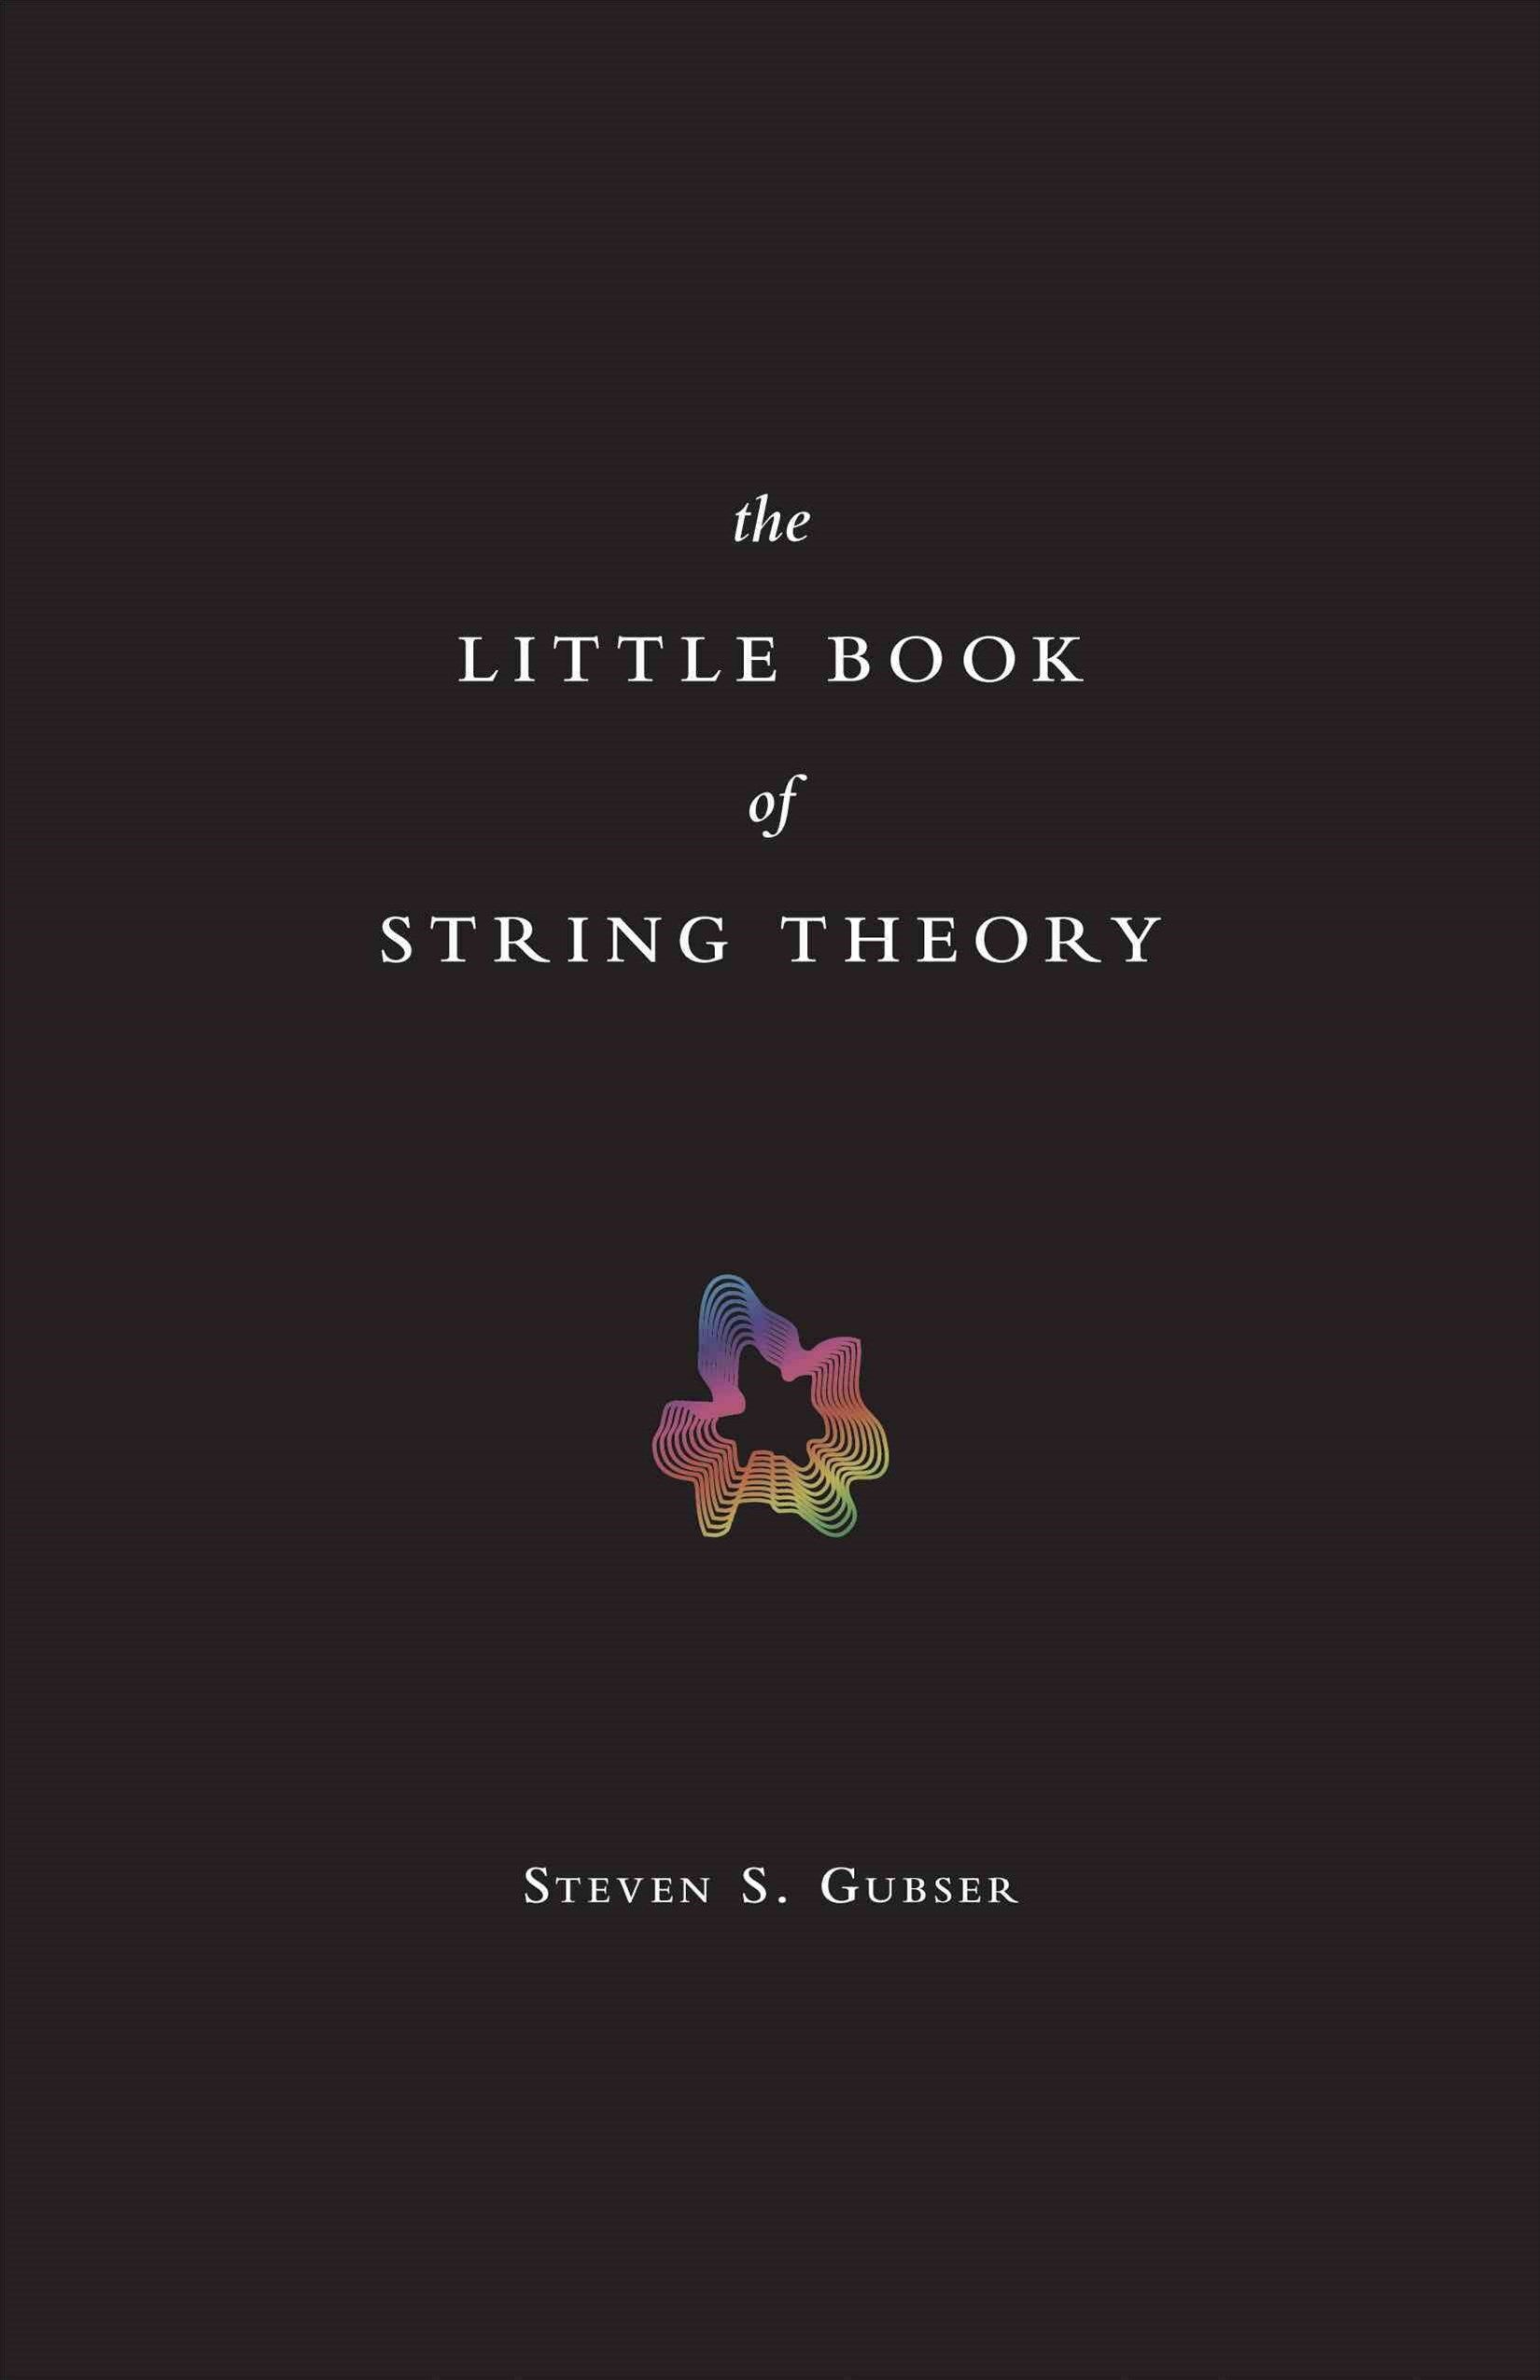 Little Book of String Theory